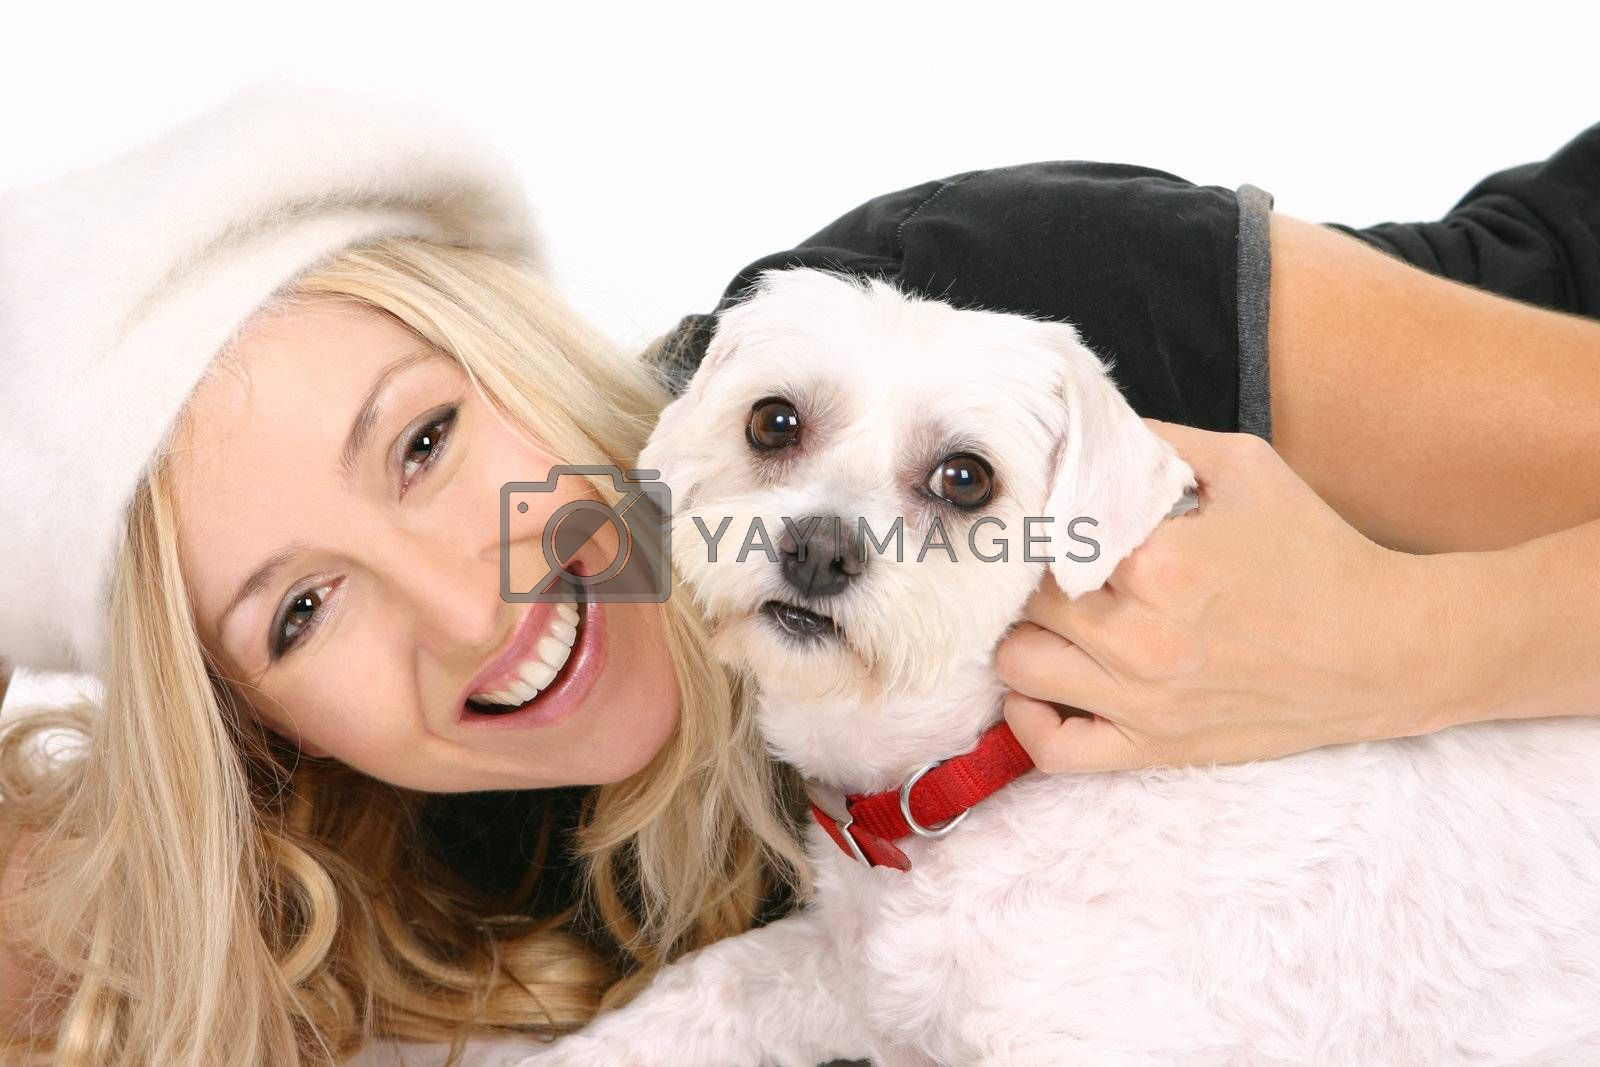 Cheerful female playing with a dog.